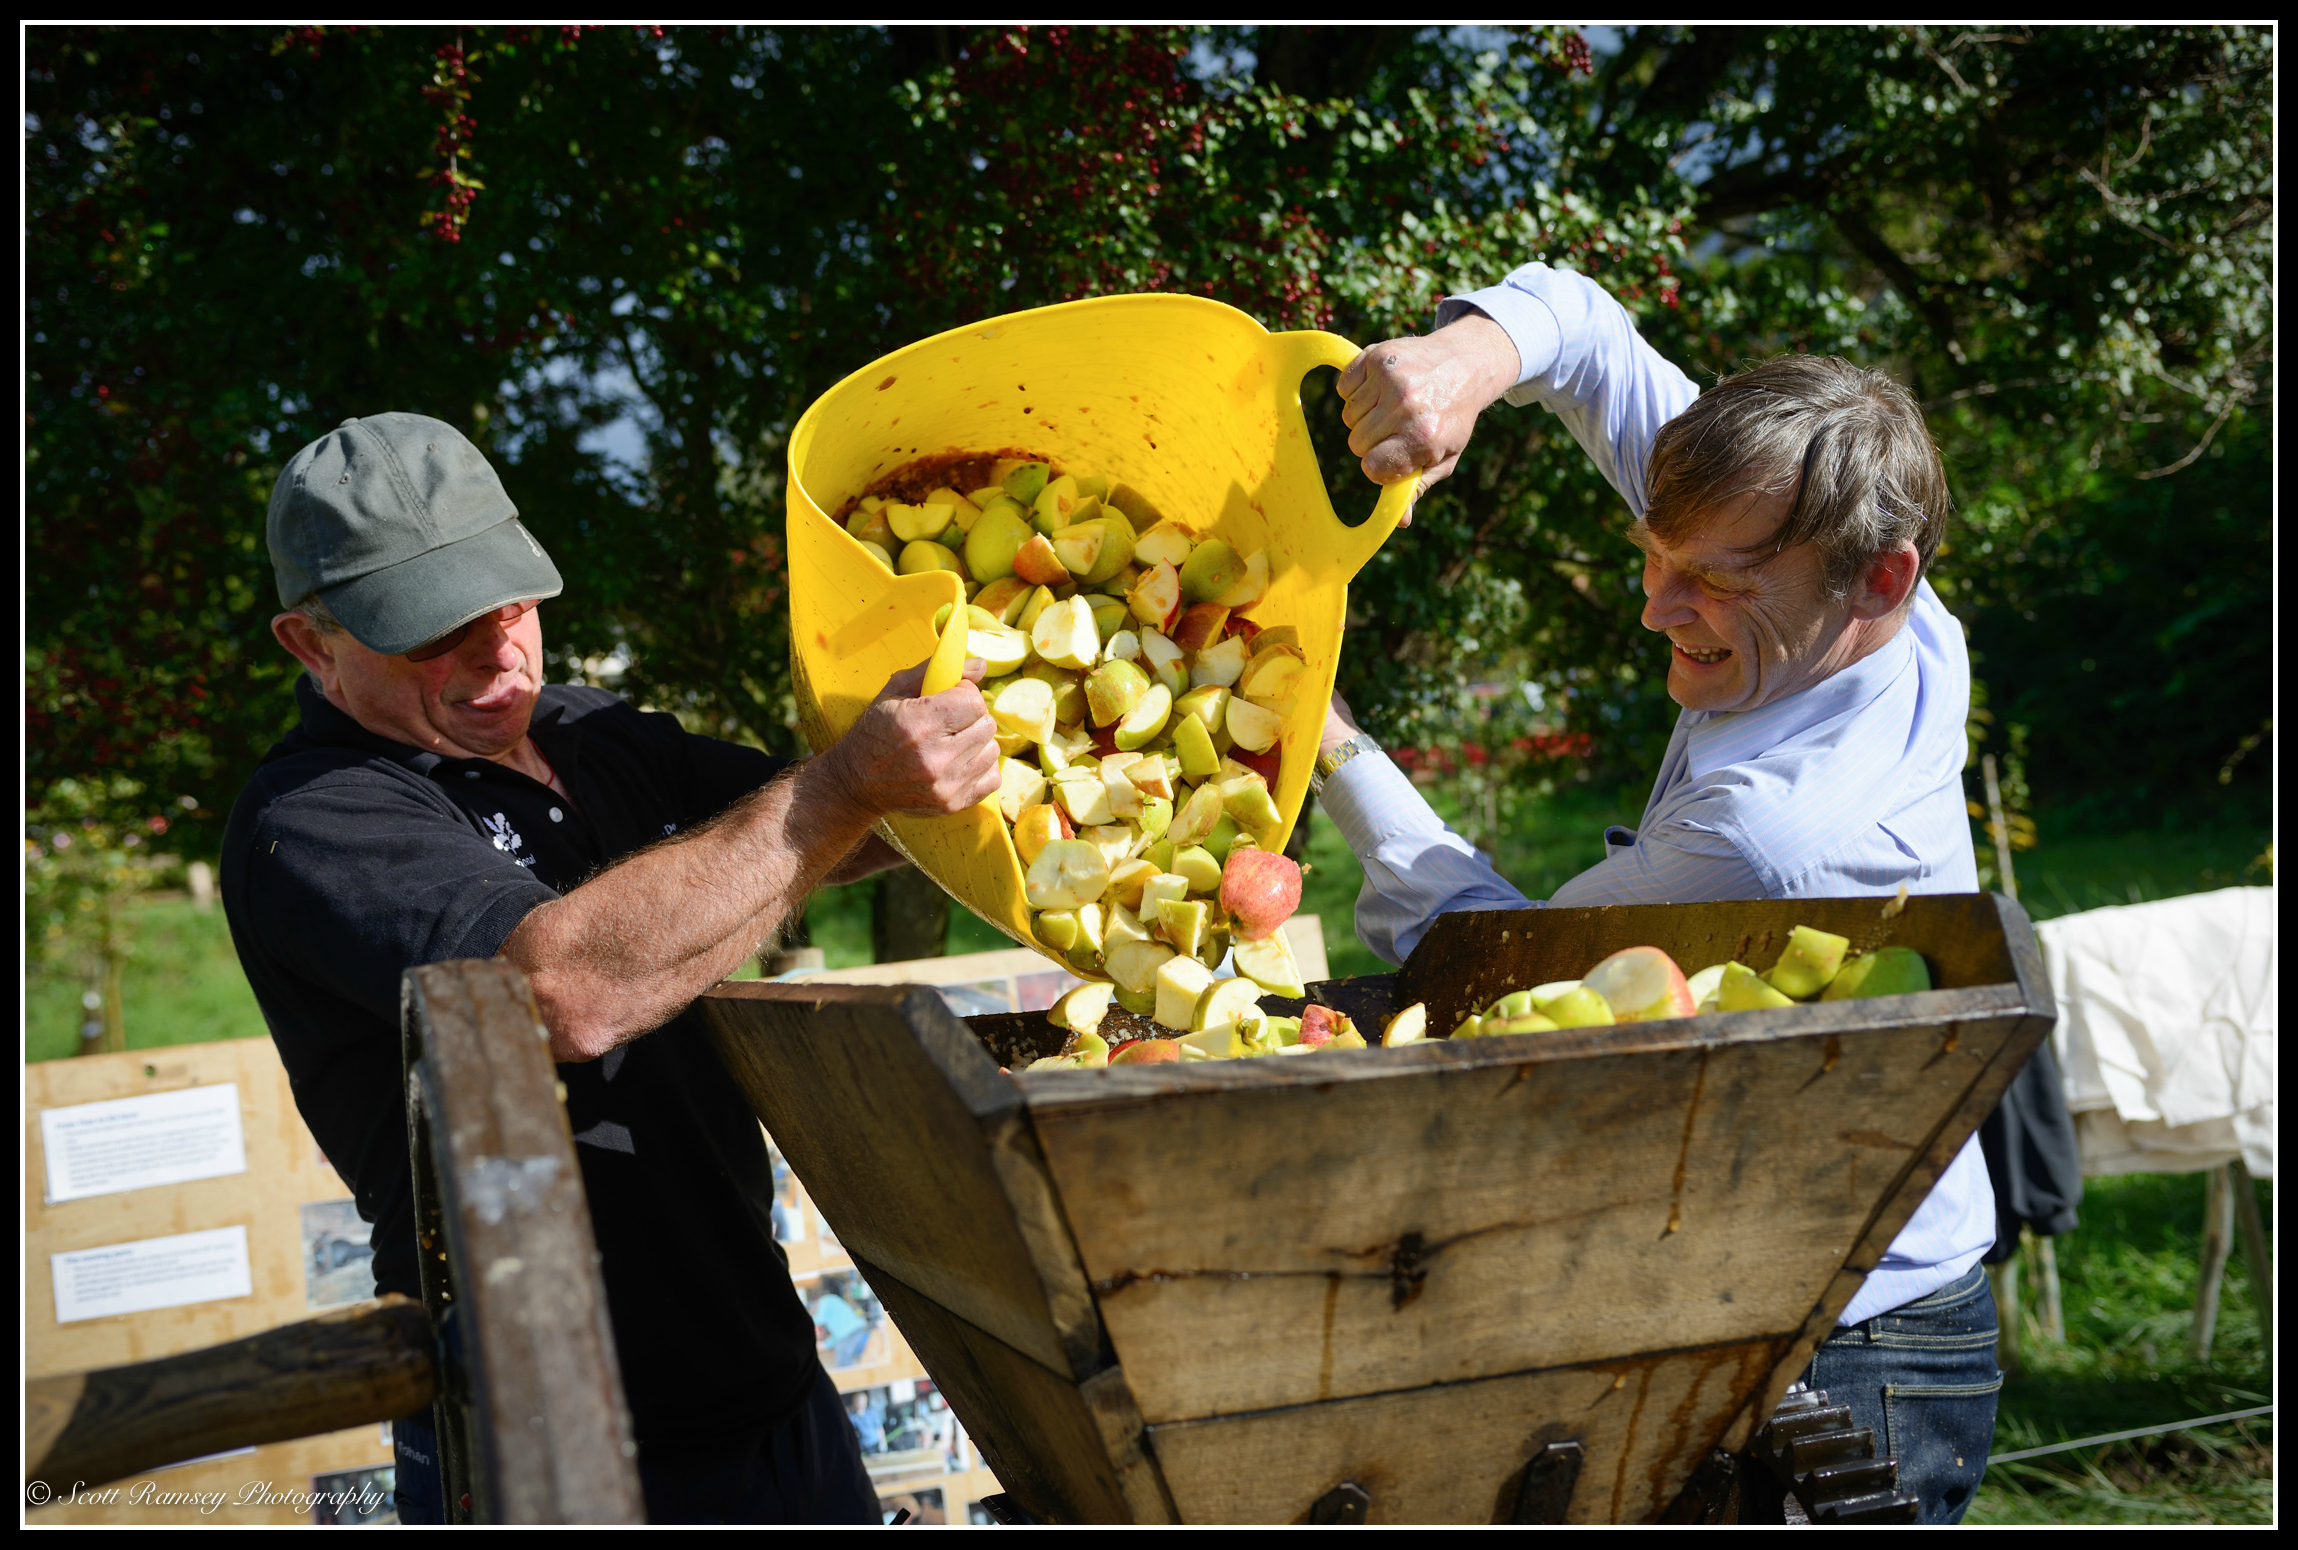 Volunteers tip apples into a large mulching machine before pressing the apples and producing apple juice at the Apple Day in Slindon, West Sussex.